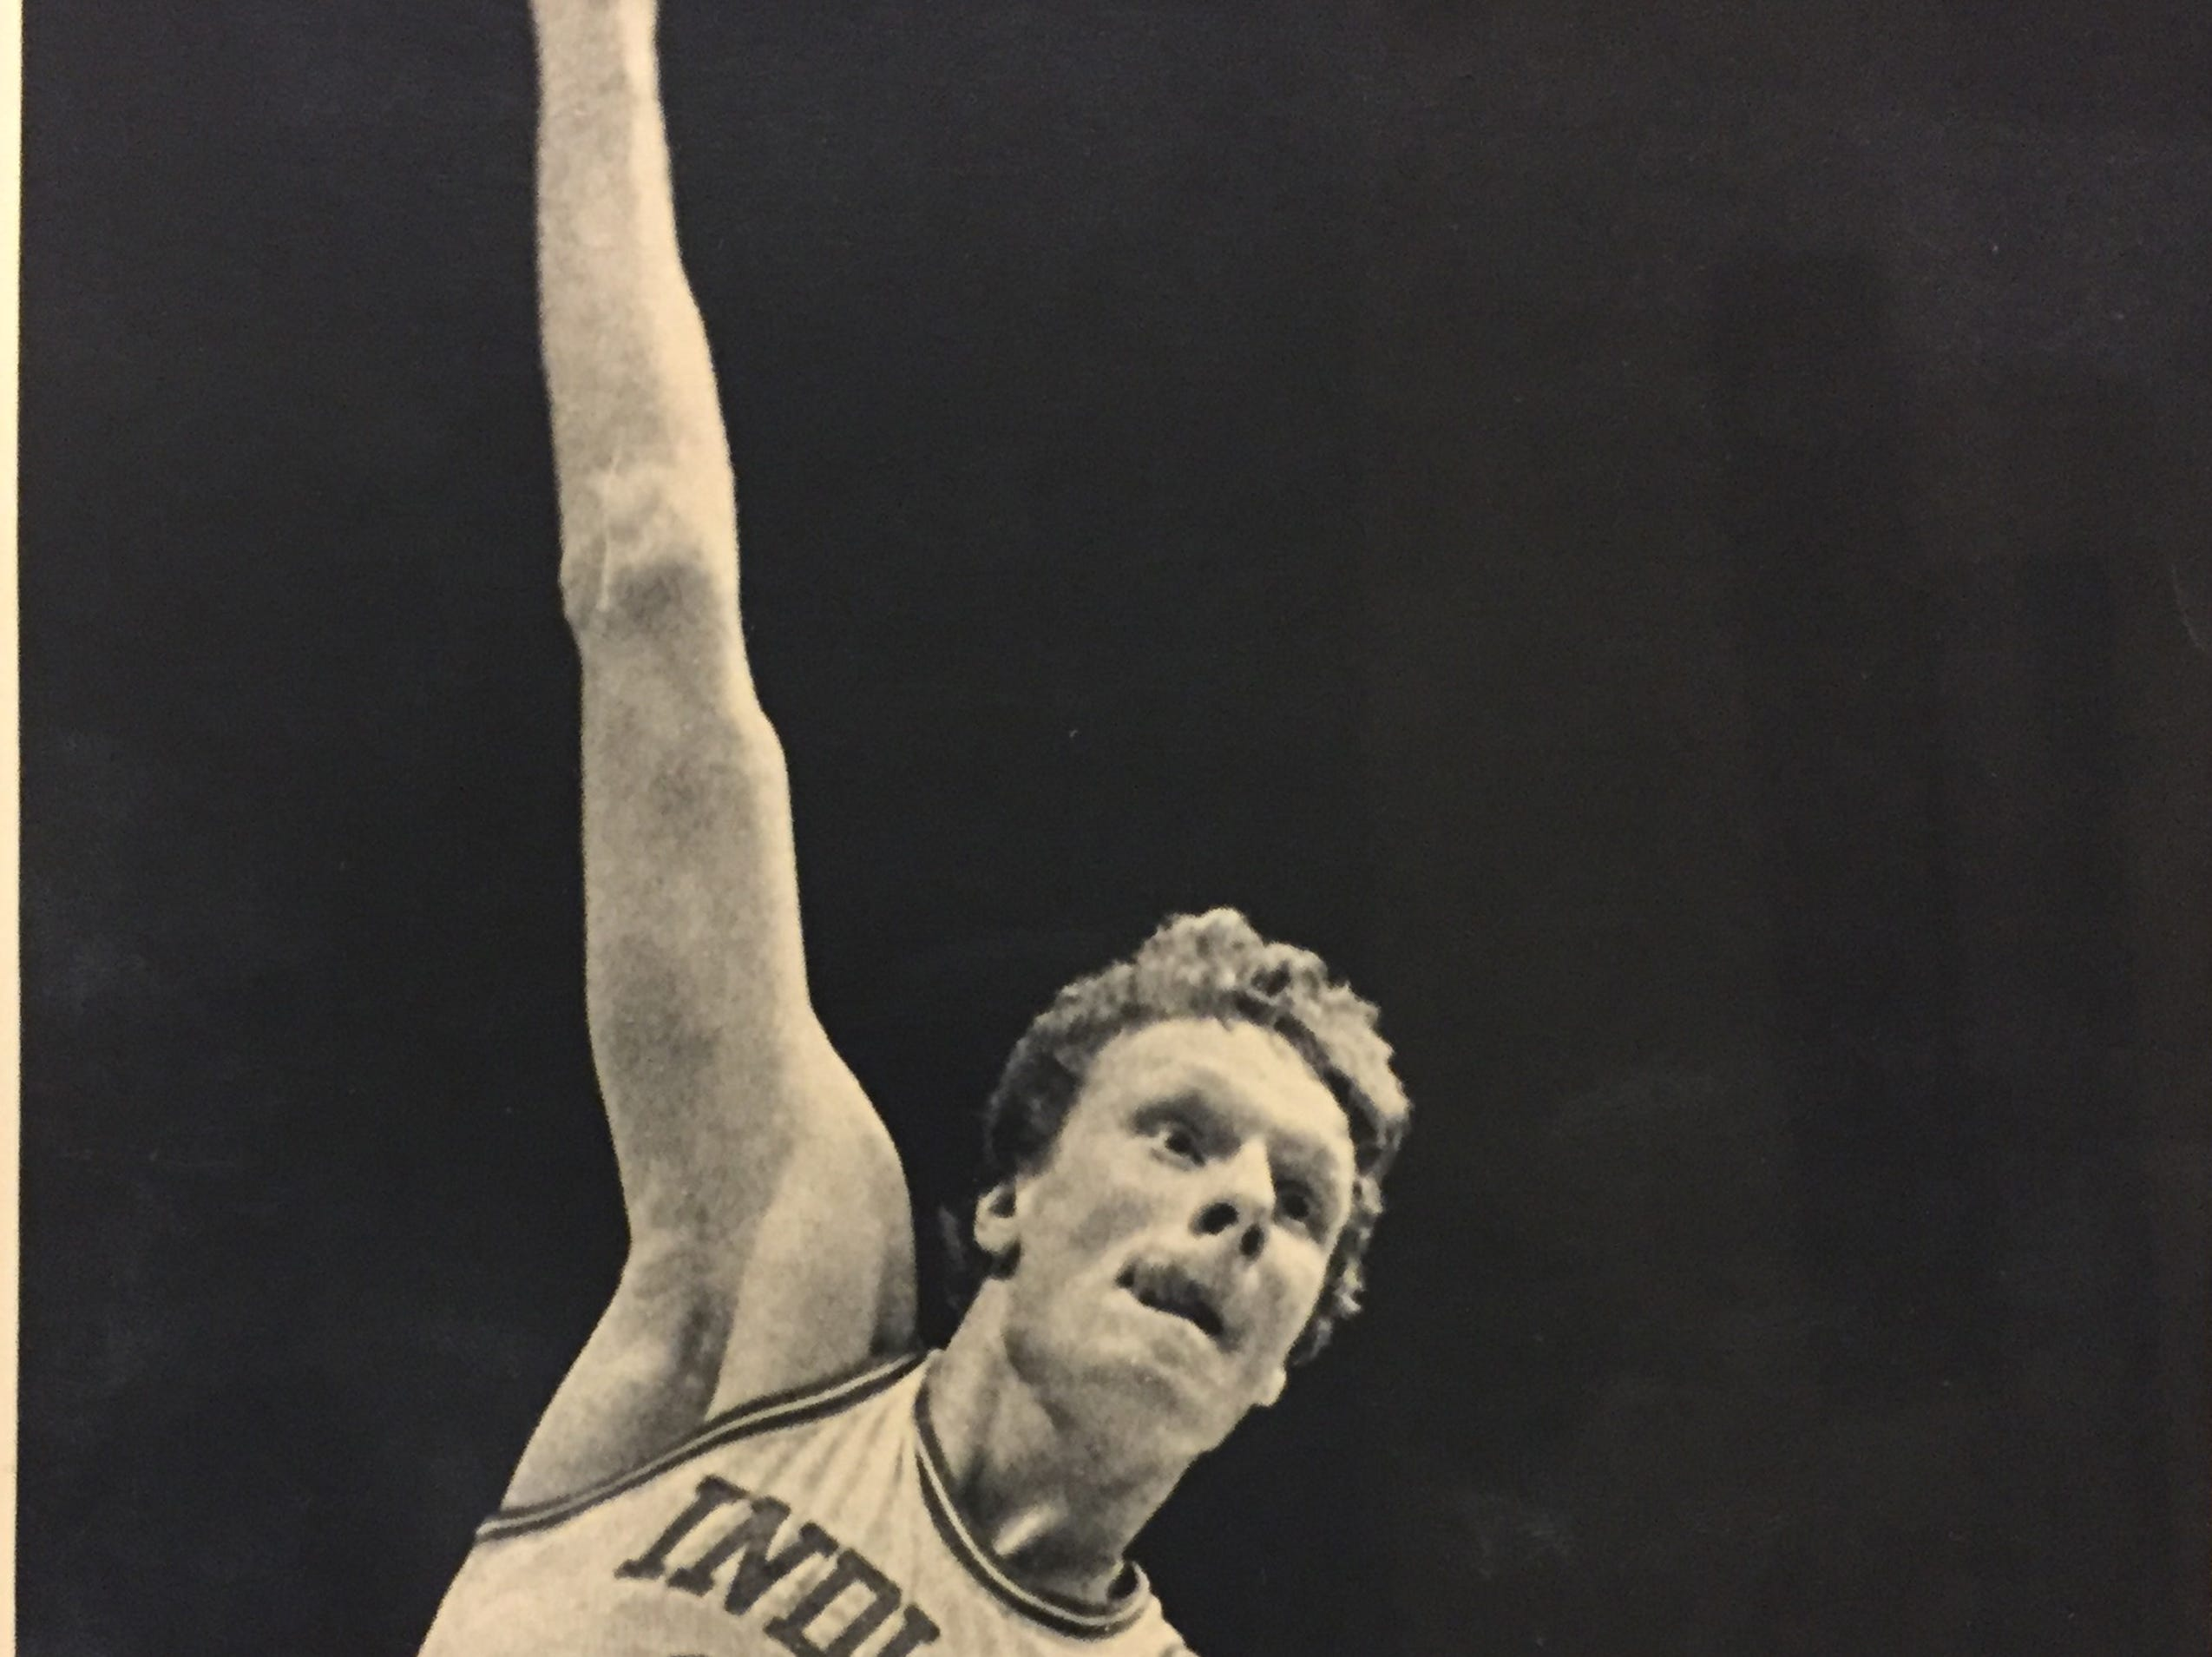 IU's 7-2 center Uwe Blab puts up a hook shot against Ohio State on March 12, 1983.